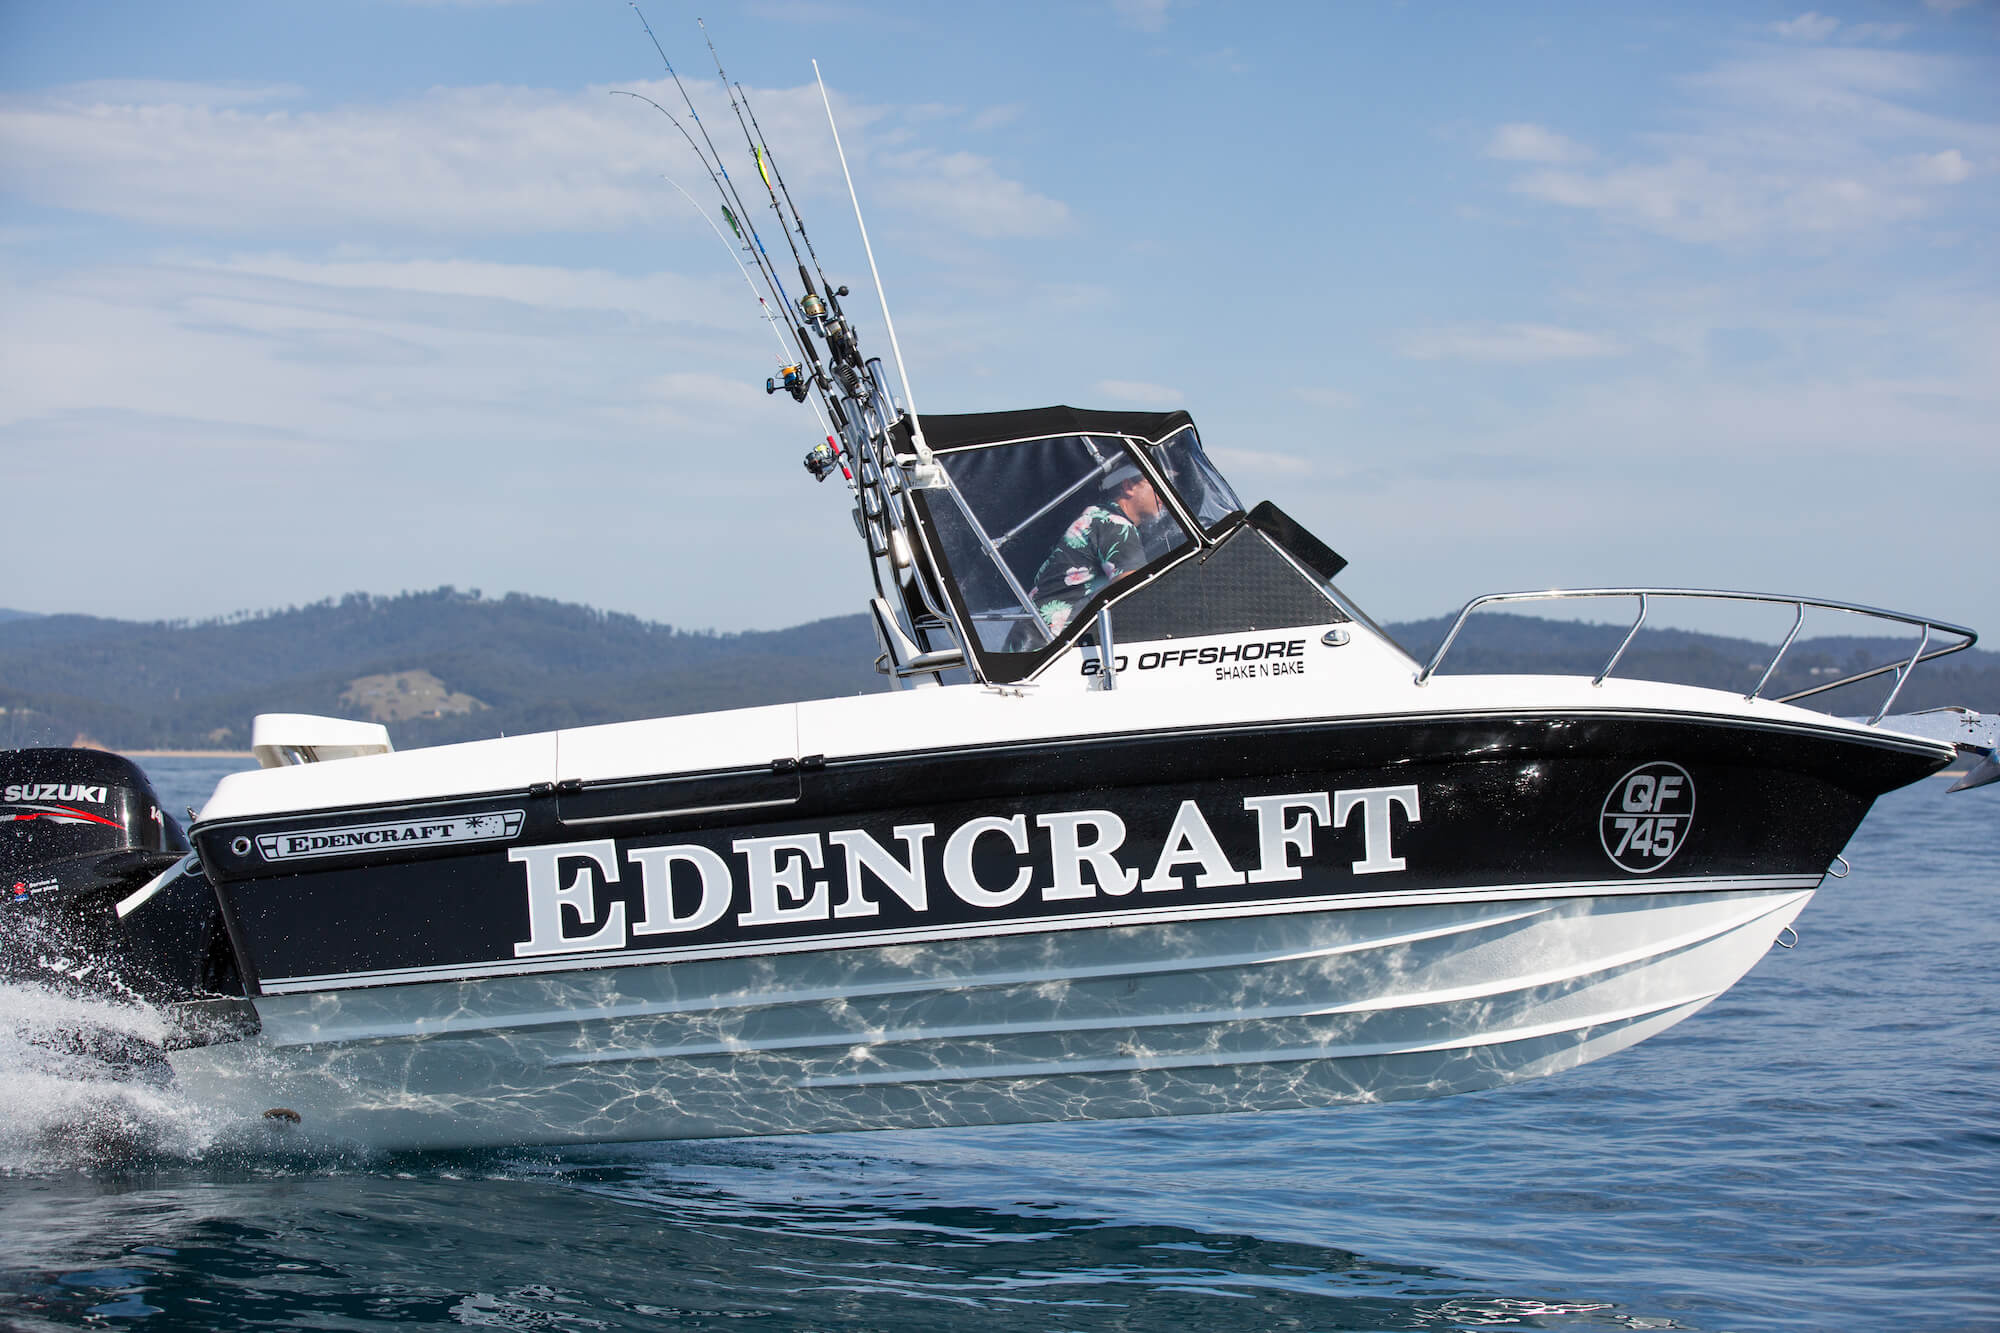 Edencraft 6.0m Offshore boat launching from the water